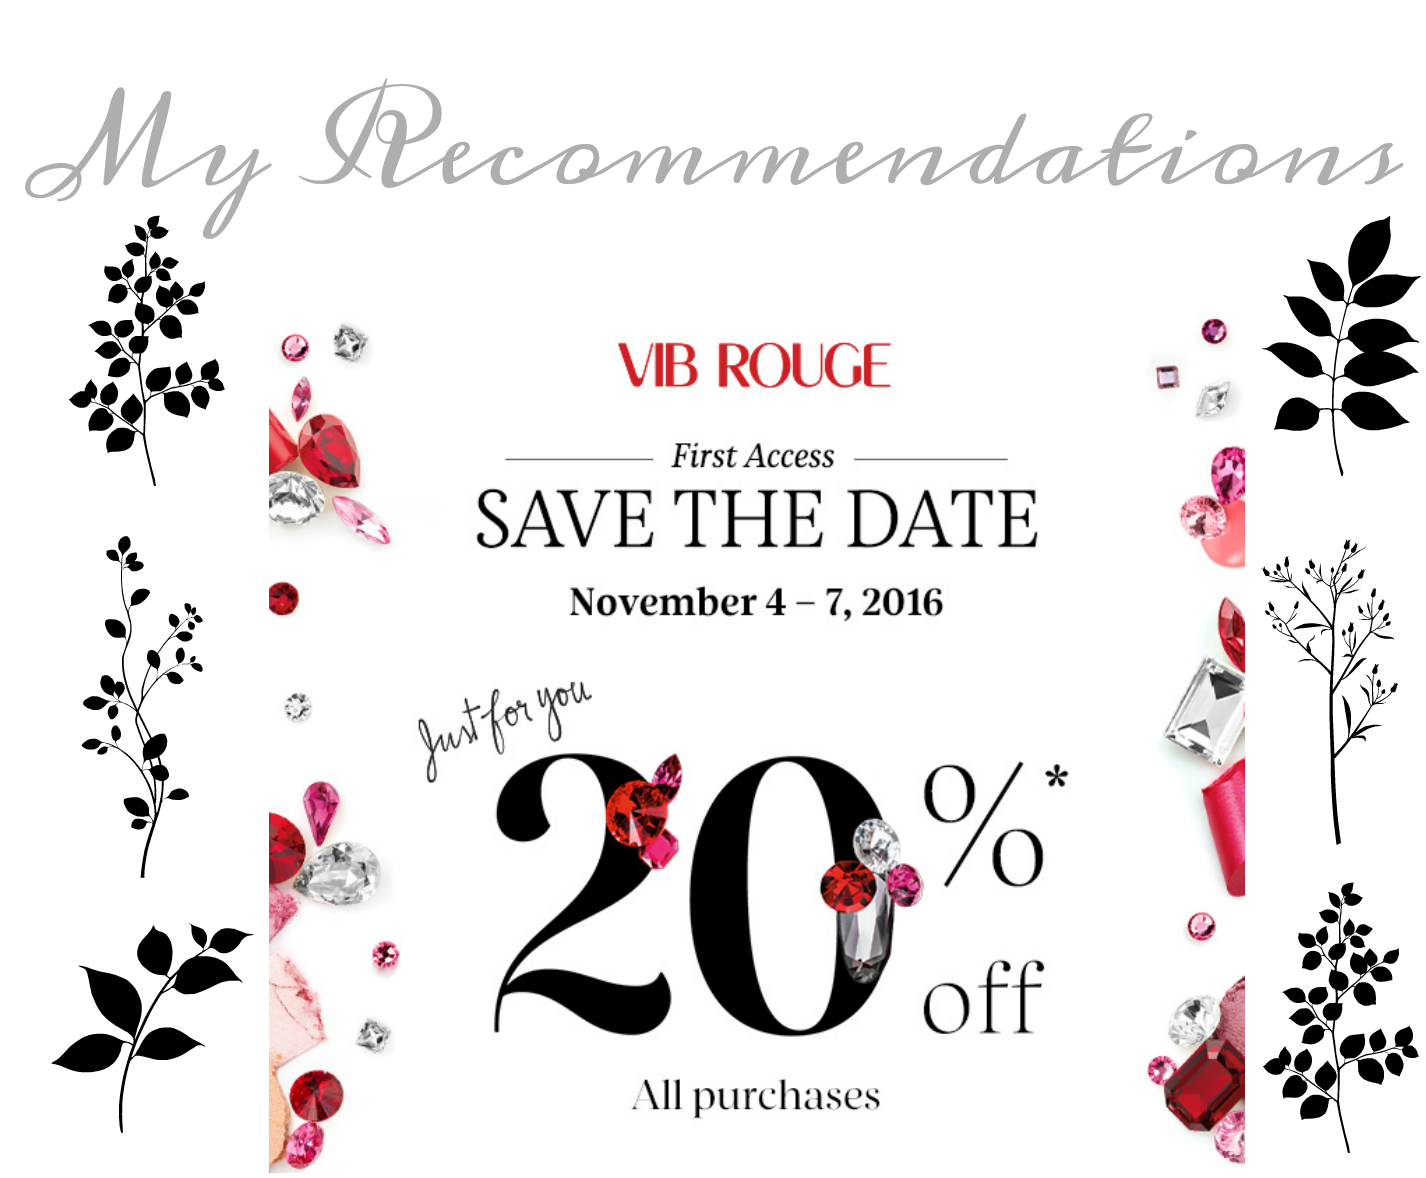 Sephora VIB Rouge Sale 2016